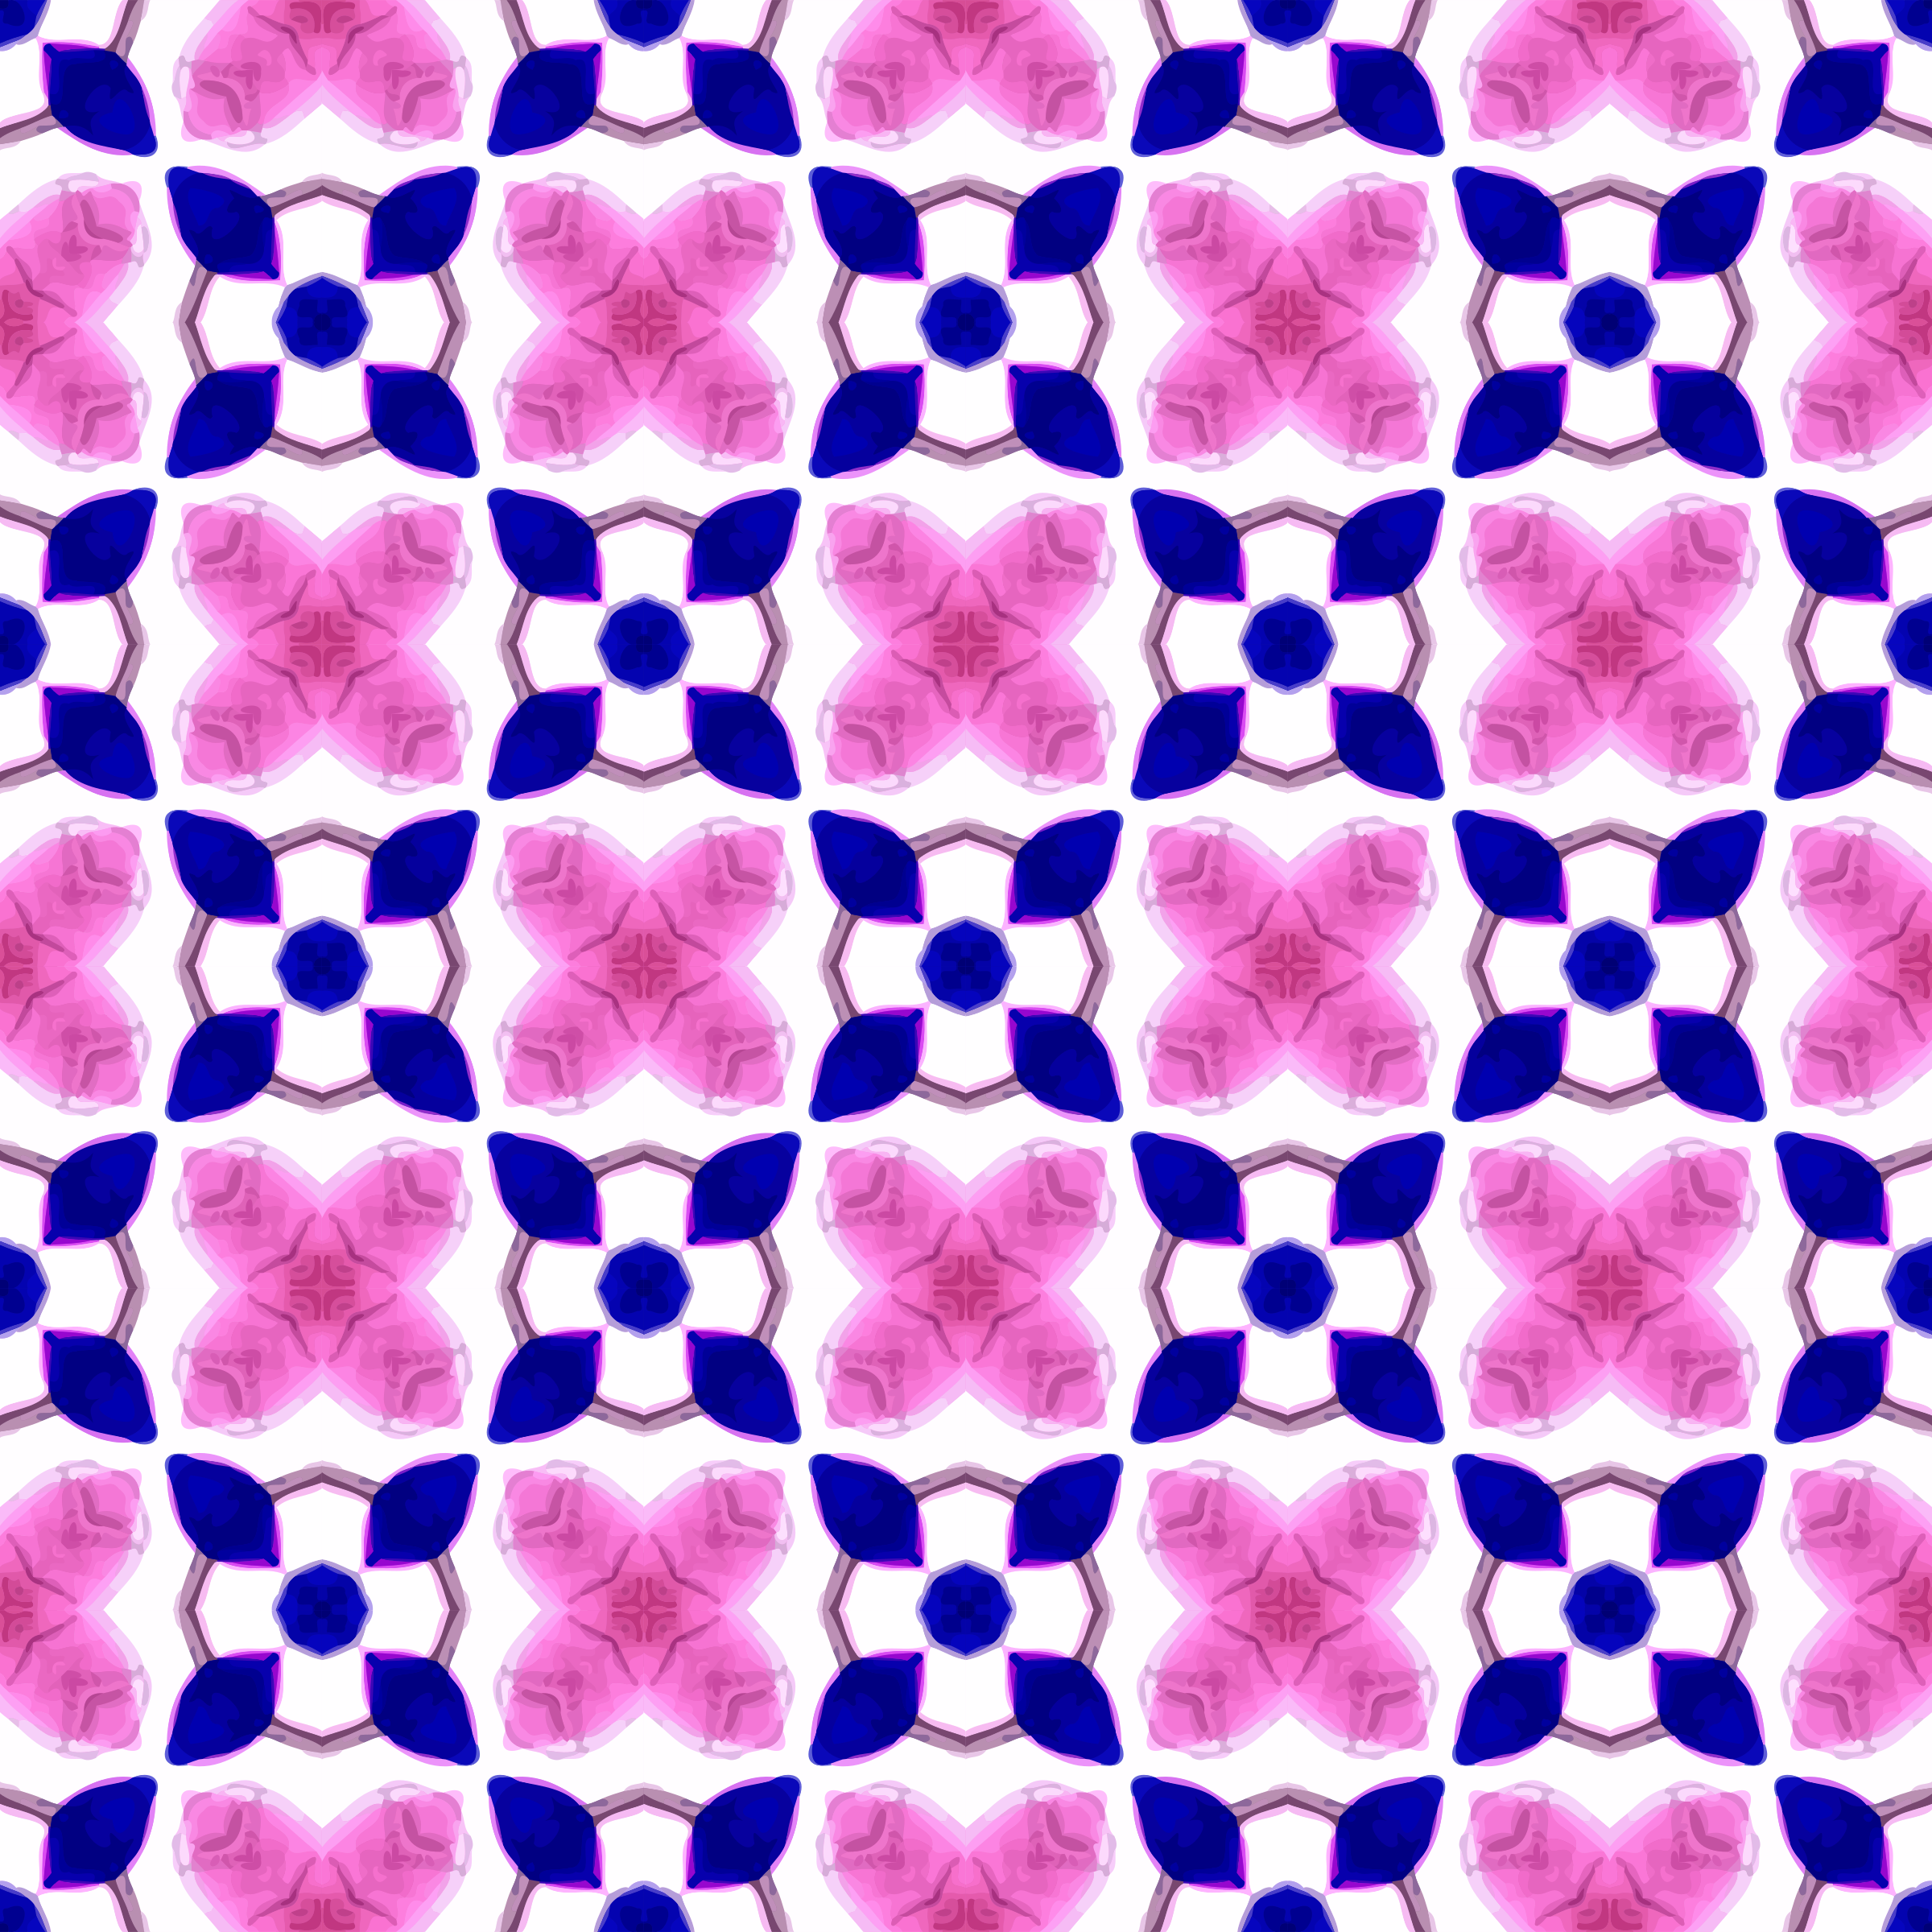 Background pattern 161 (colour 3) by Firkin